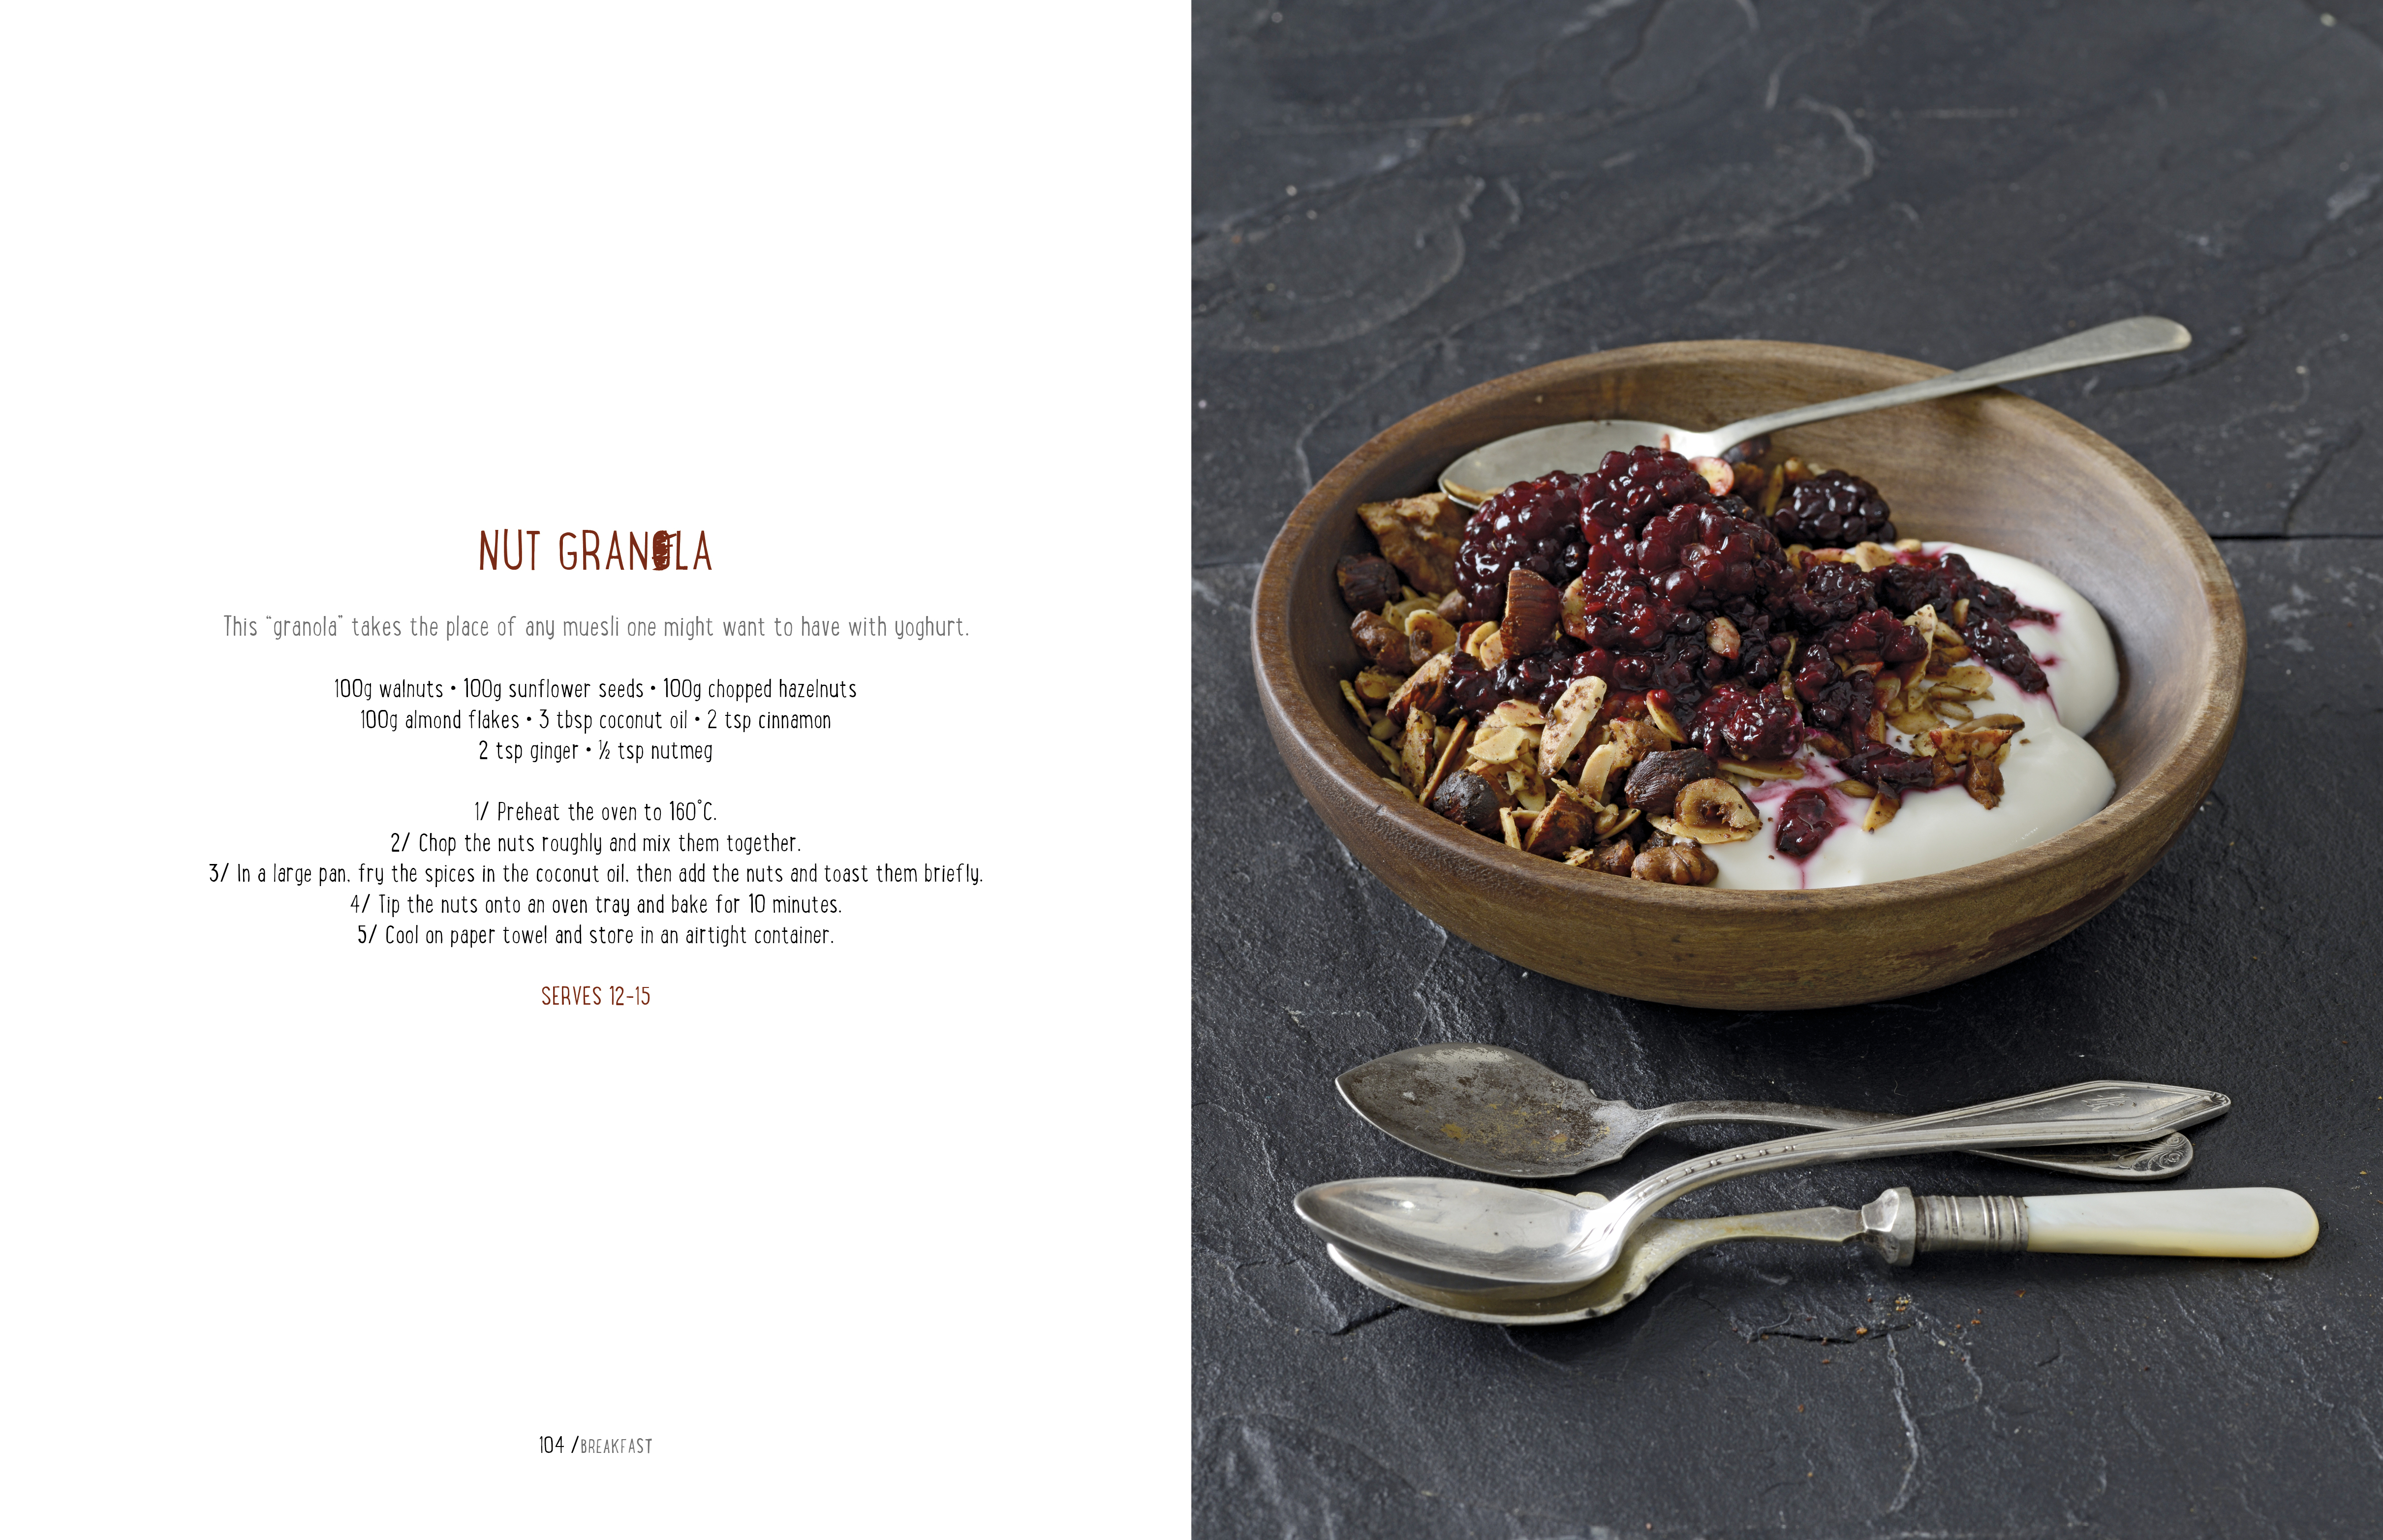 p104-105_nut_granola_real_food